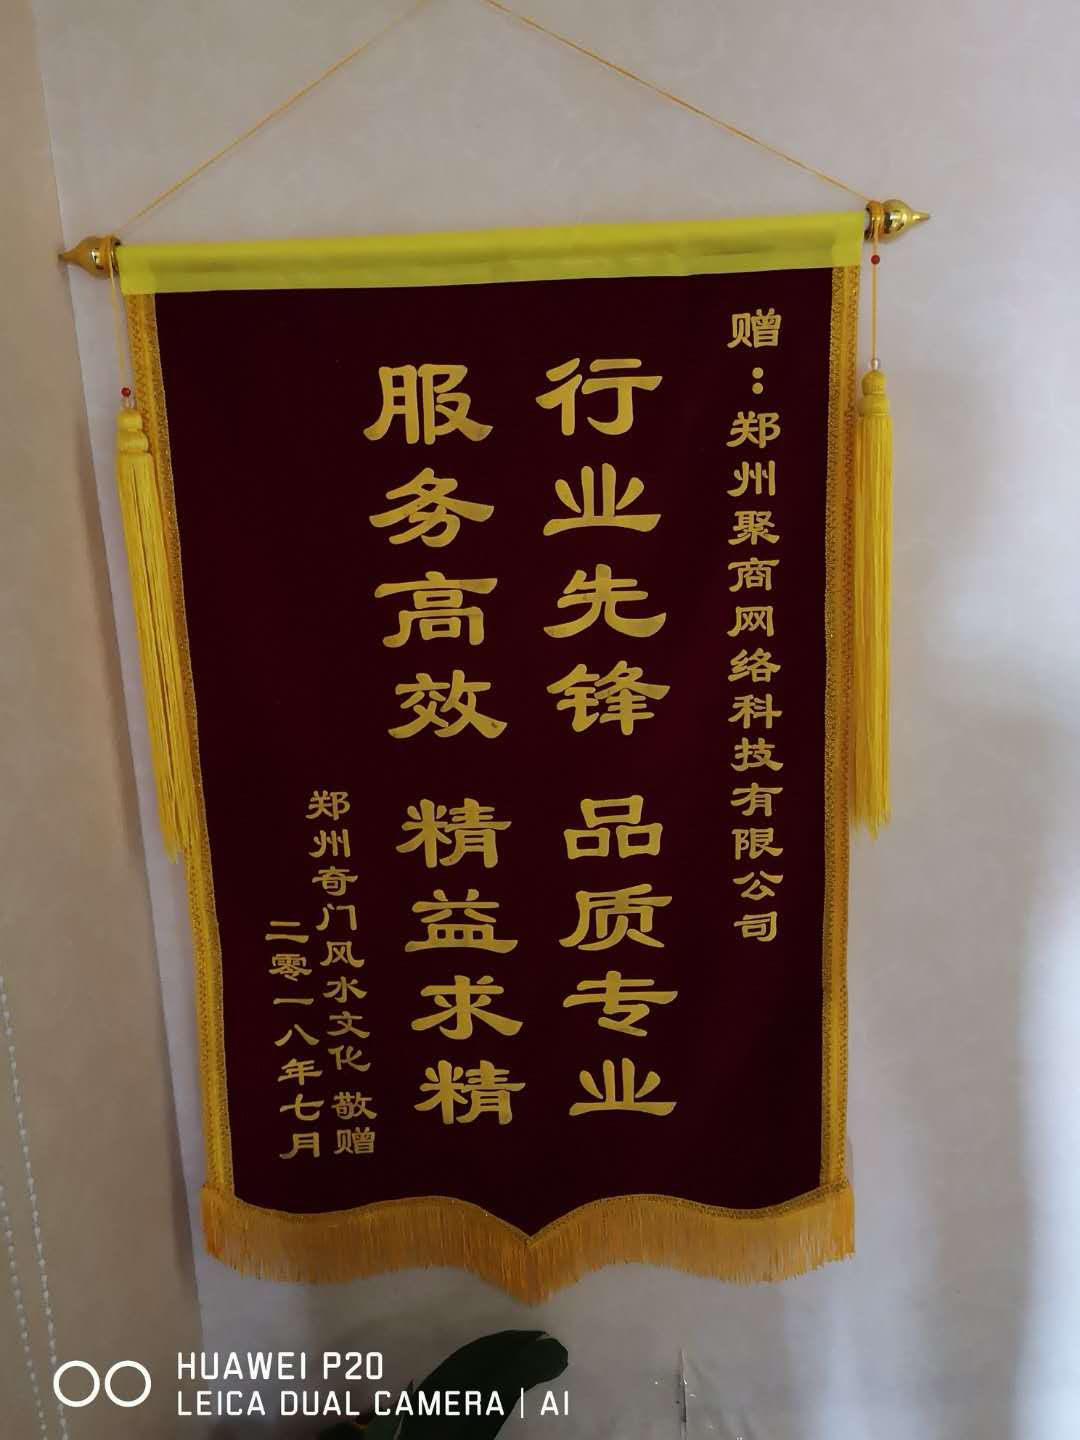 The pennants presented by Zhengzhou Qimen Culture Communication Co., Ltd.